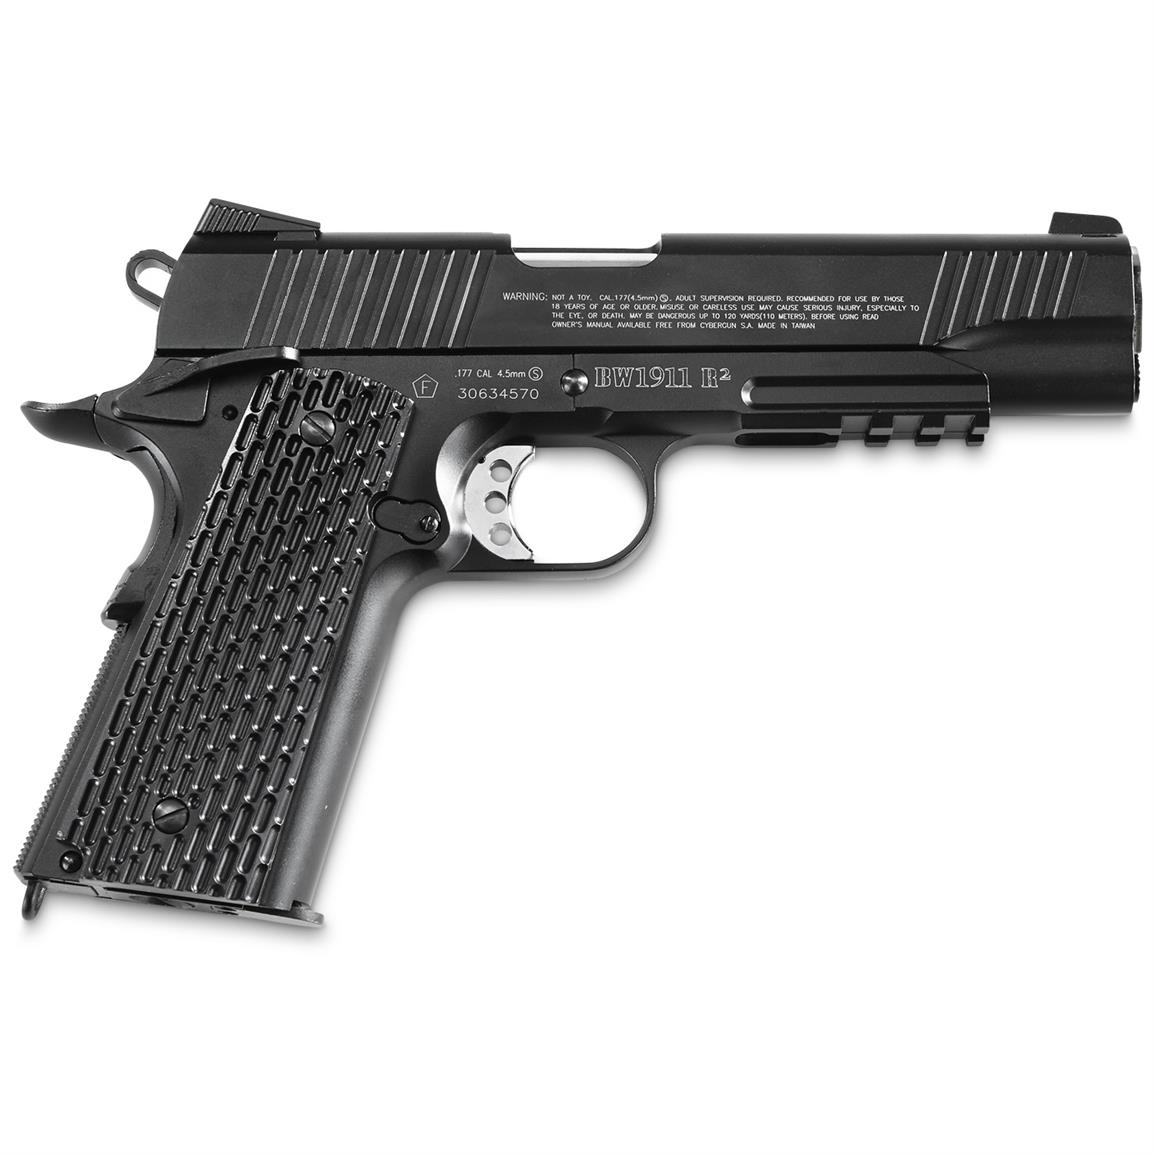 Blackwater BW1911 R2 CO2 Pistol, Semi-Automatic, .177 Caliber, 18 Rounds